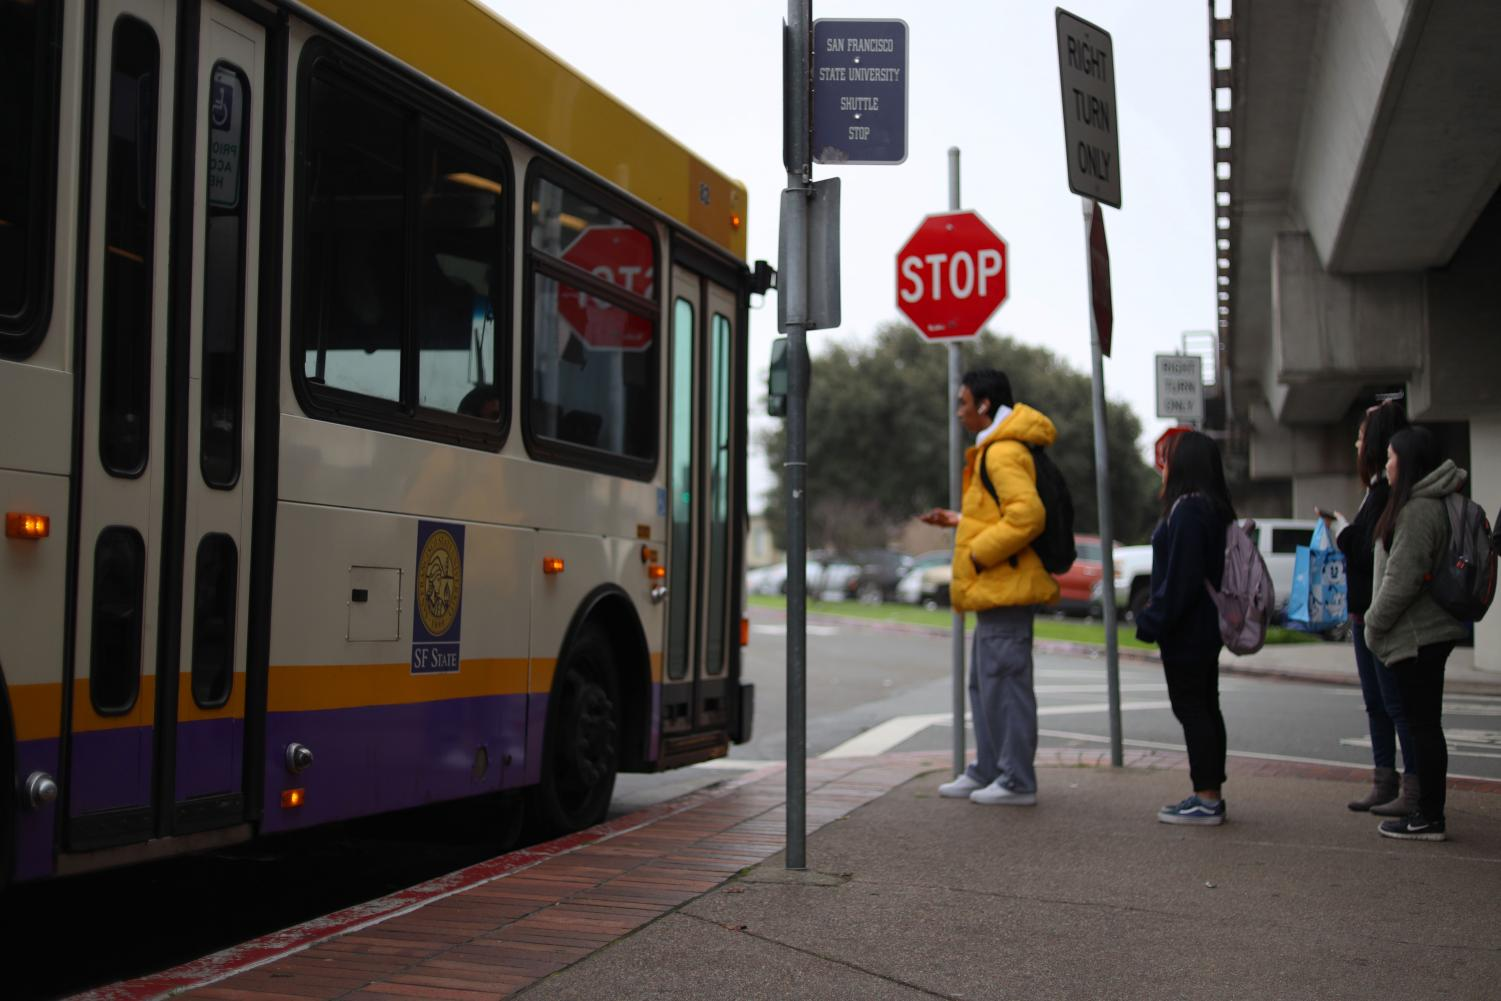 People wait in line to board the San Francisco State University shuttle bus at the Daly City Bart Station in Daly City Calif., on Monday January 27, 2020. (Emily Curiel/Golden Gate Xpress)